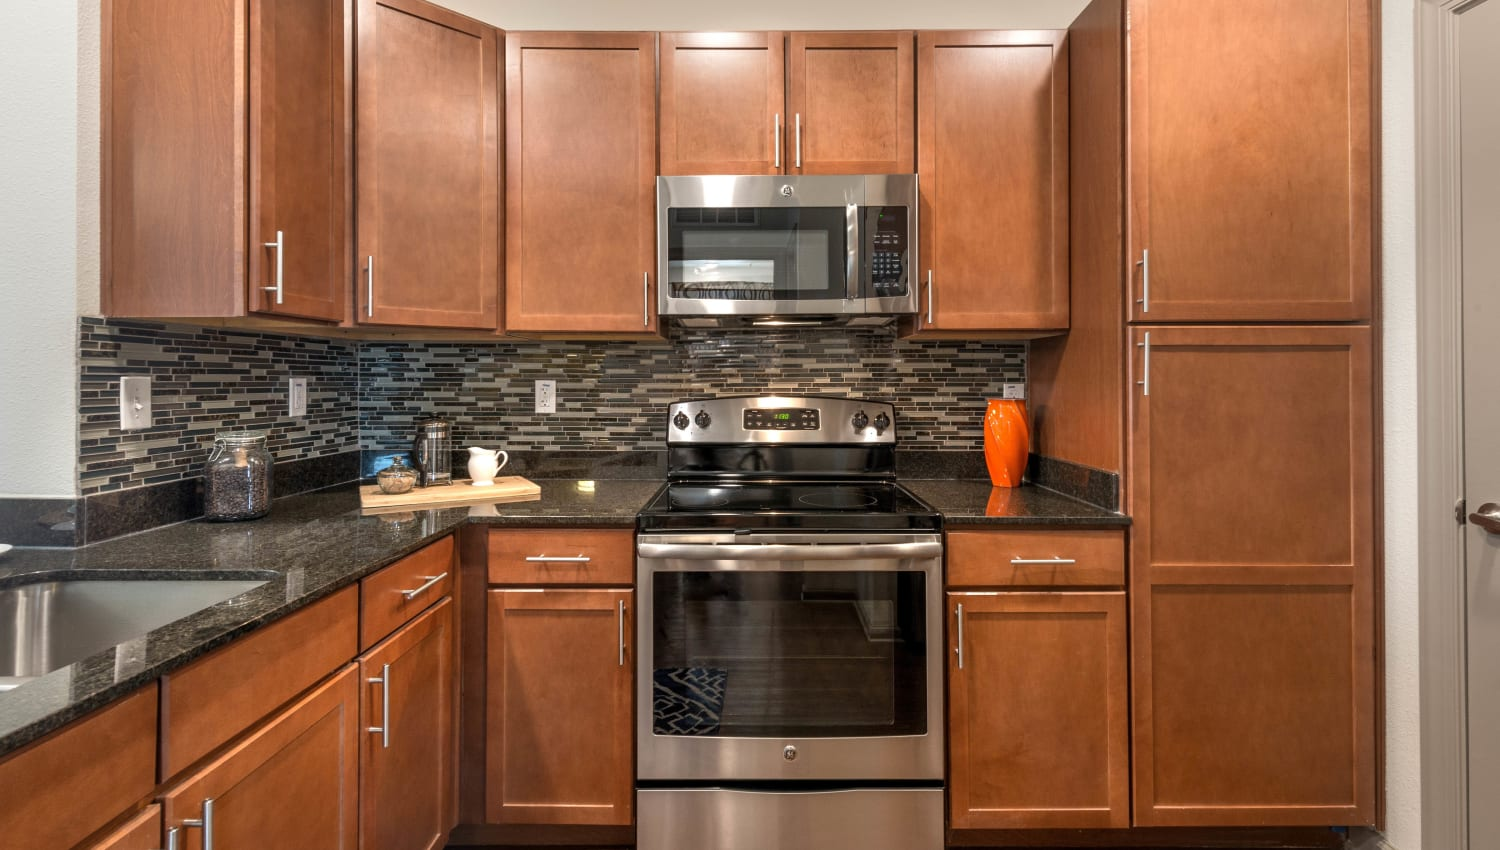 Stainless-steel appliances in a model home's kitchen at Olympus Waterford in Keller, Texas